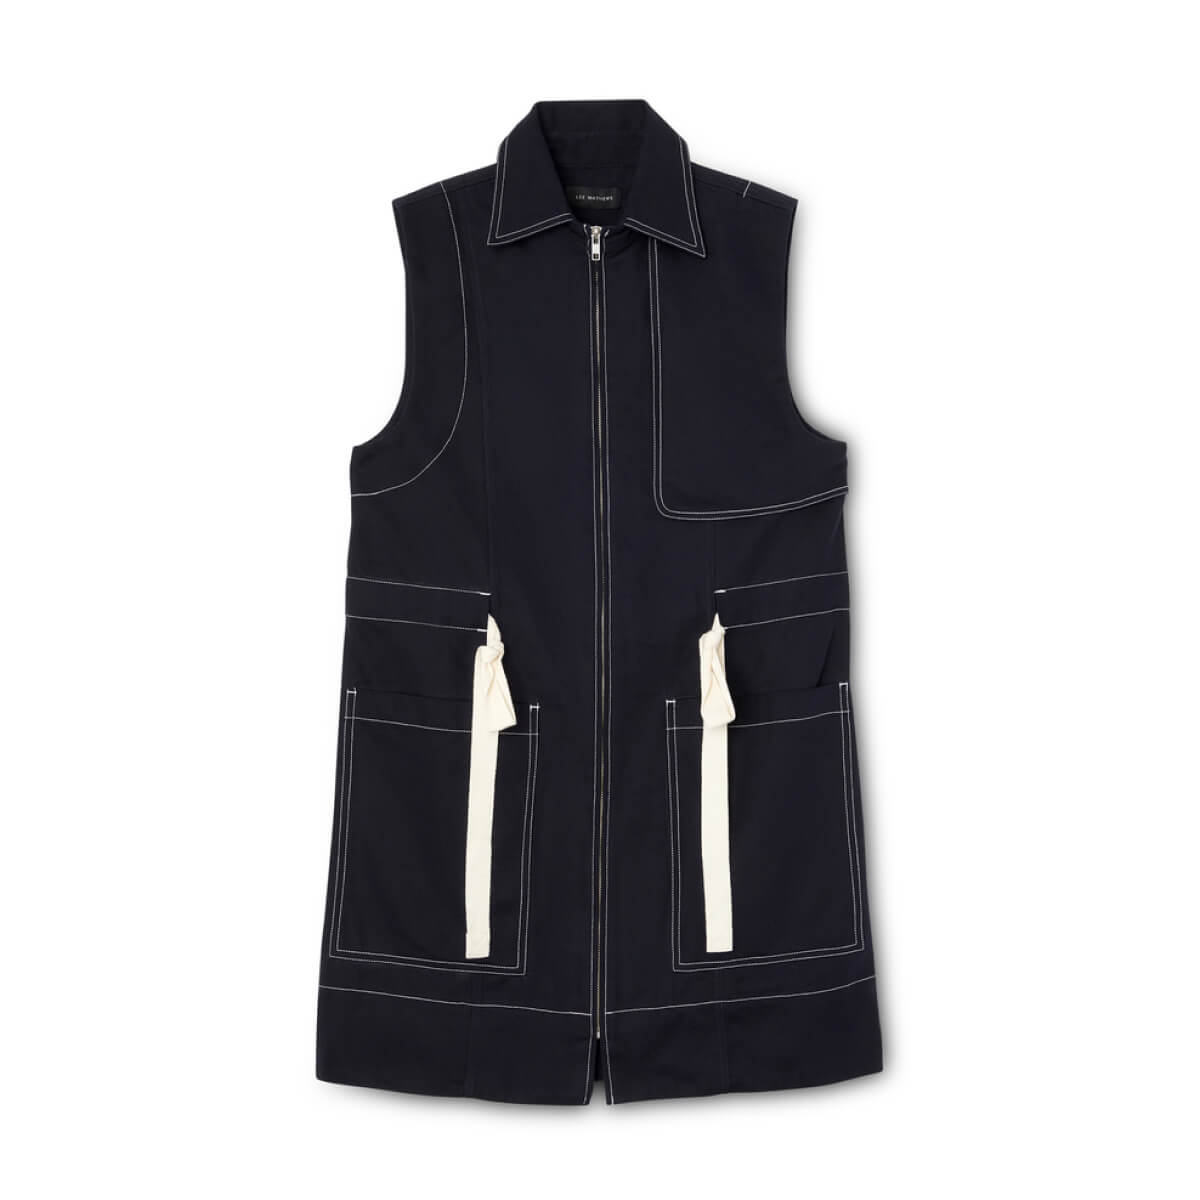 Lee Mathews vest